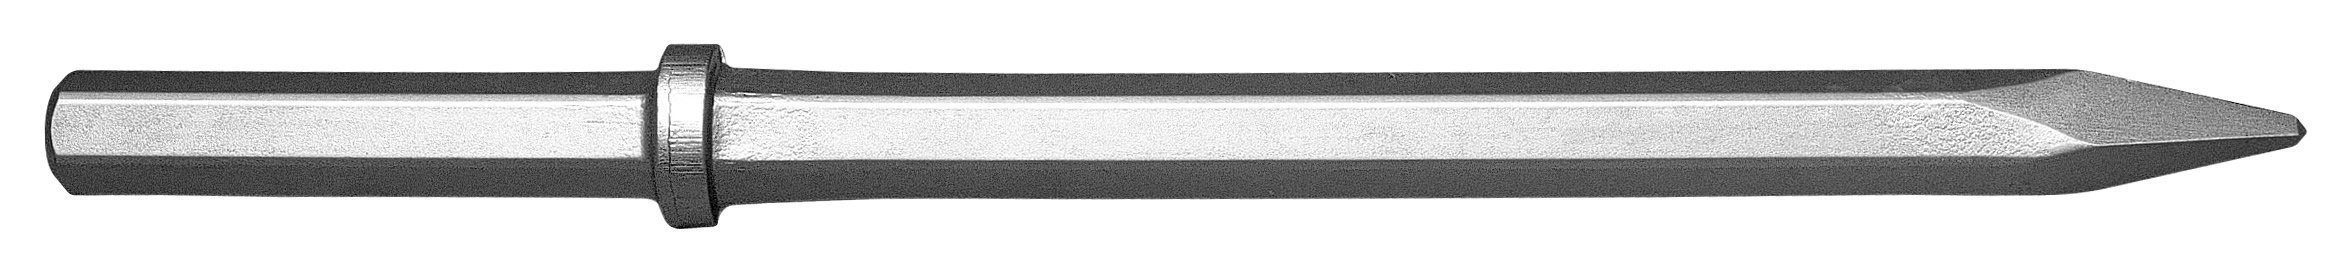 Champion Chisel, 1-1/8 by 6-Inch Hex Shank, 14-Inch Long Moil or Bull Point -Designed for 60lb & 90lb Pneumatic Hammers by Champion Chisel Works